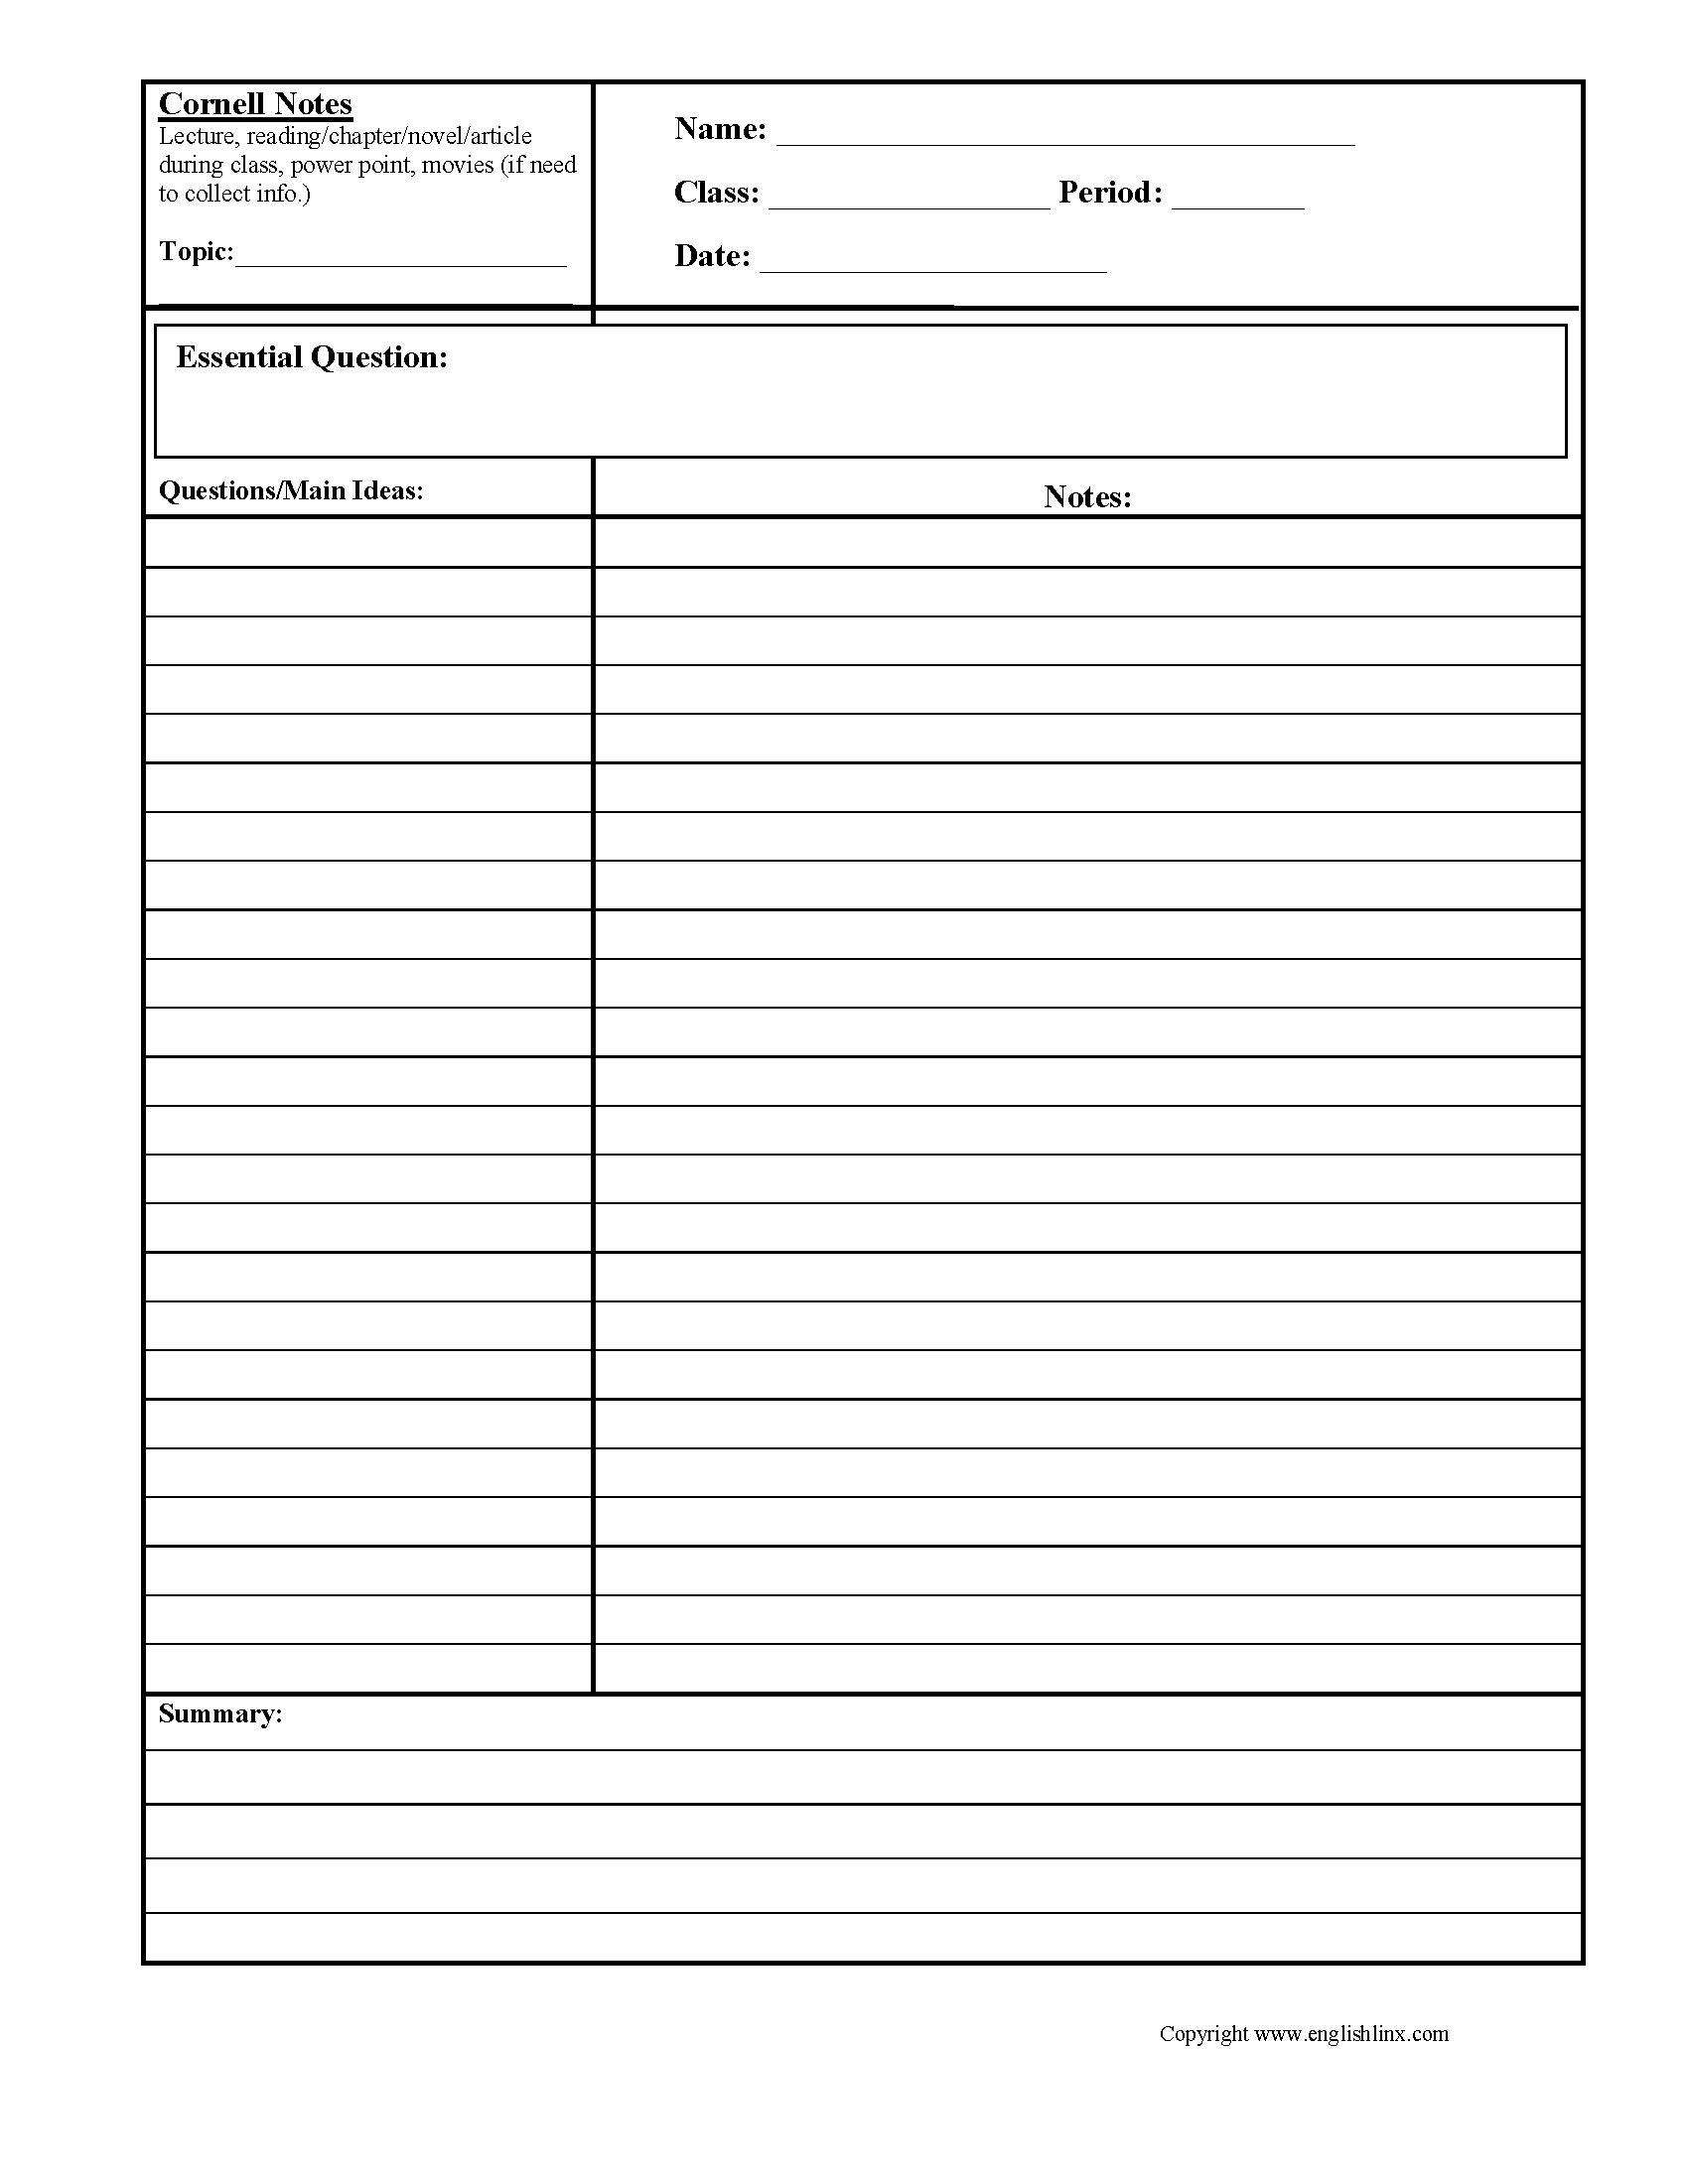 What Is Cornell Notes Used For